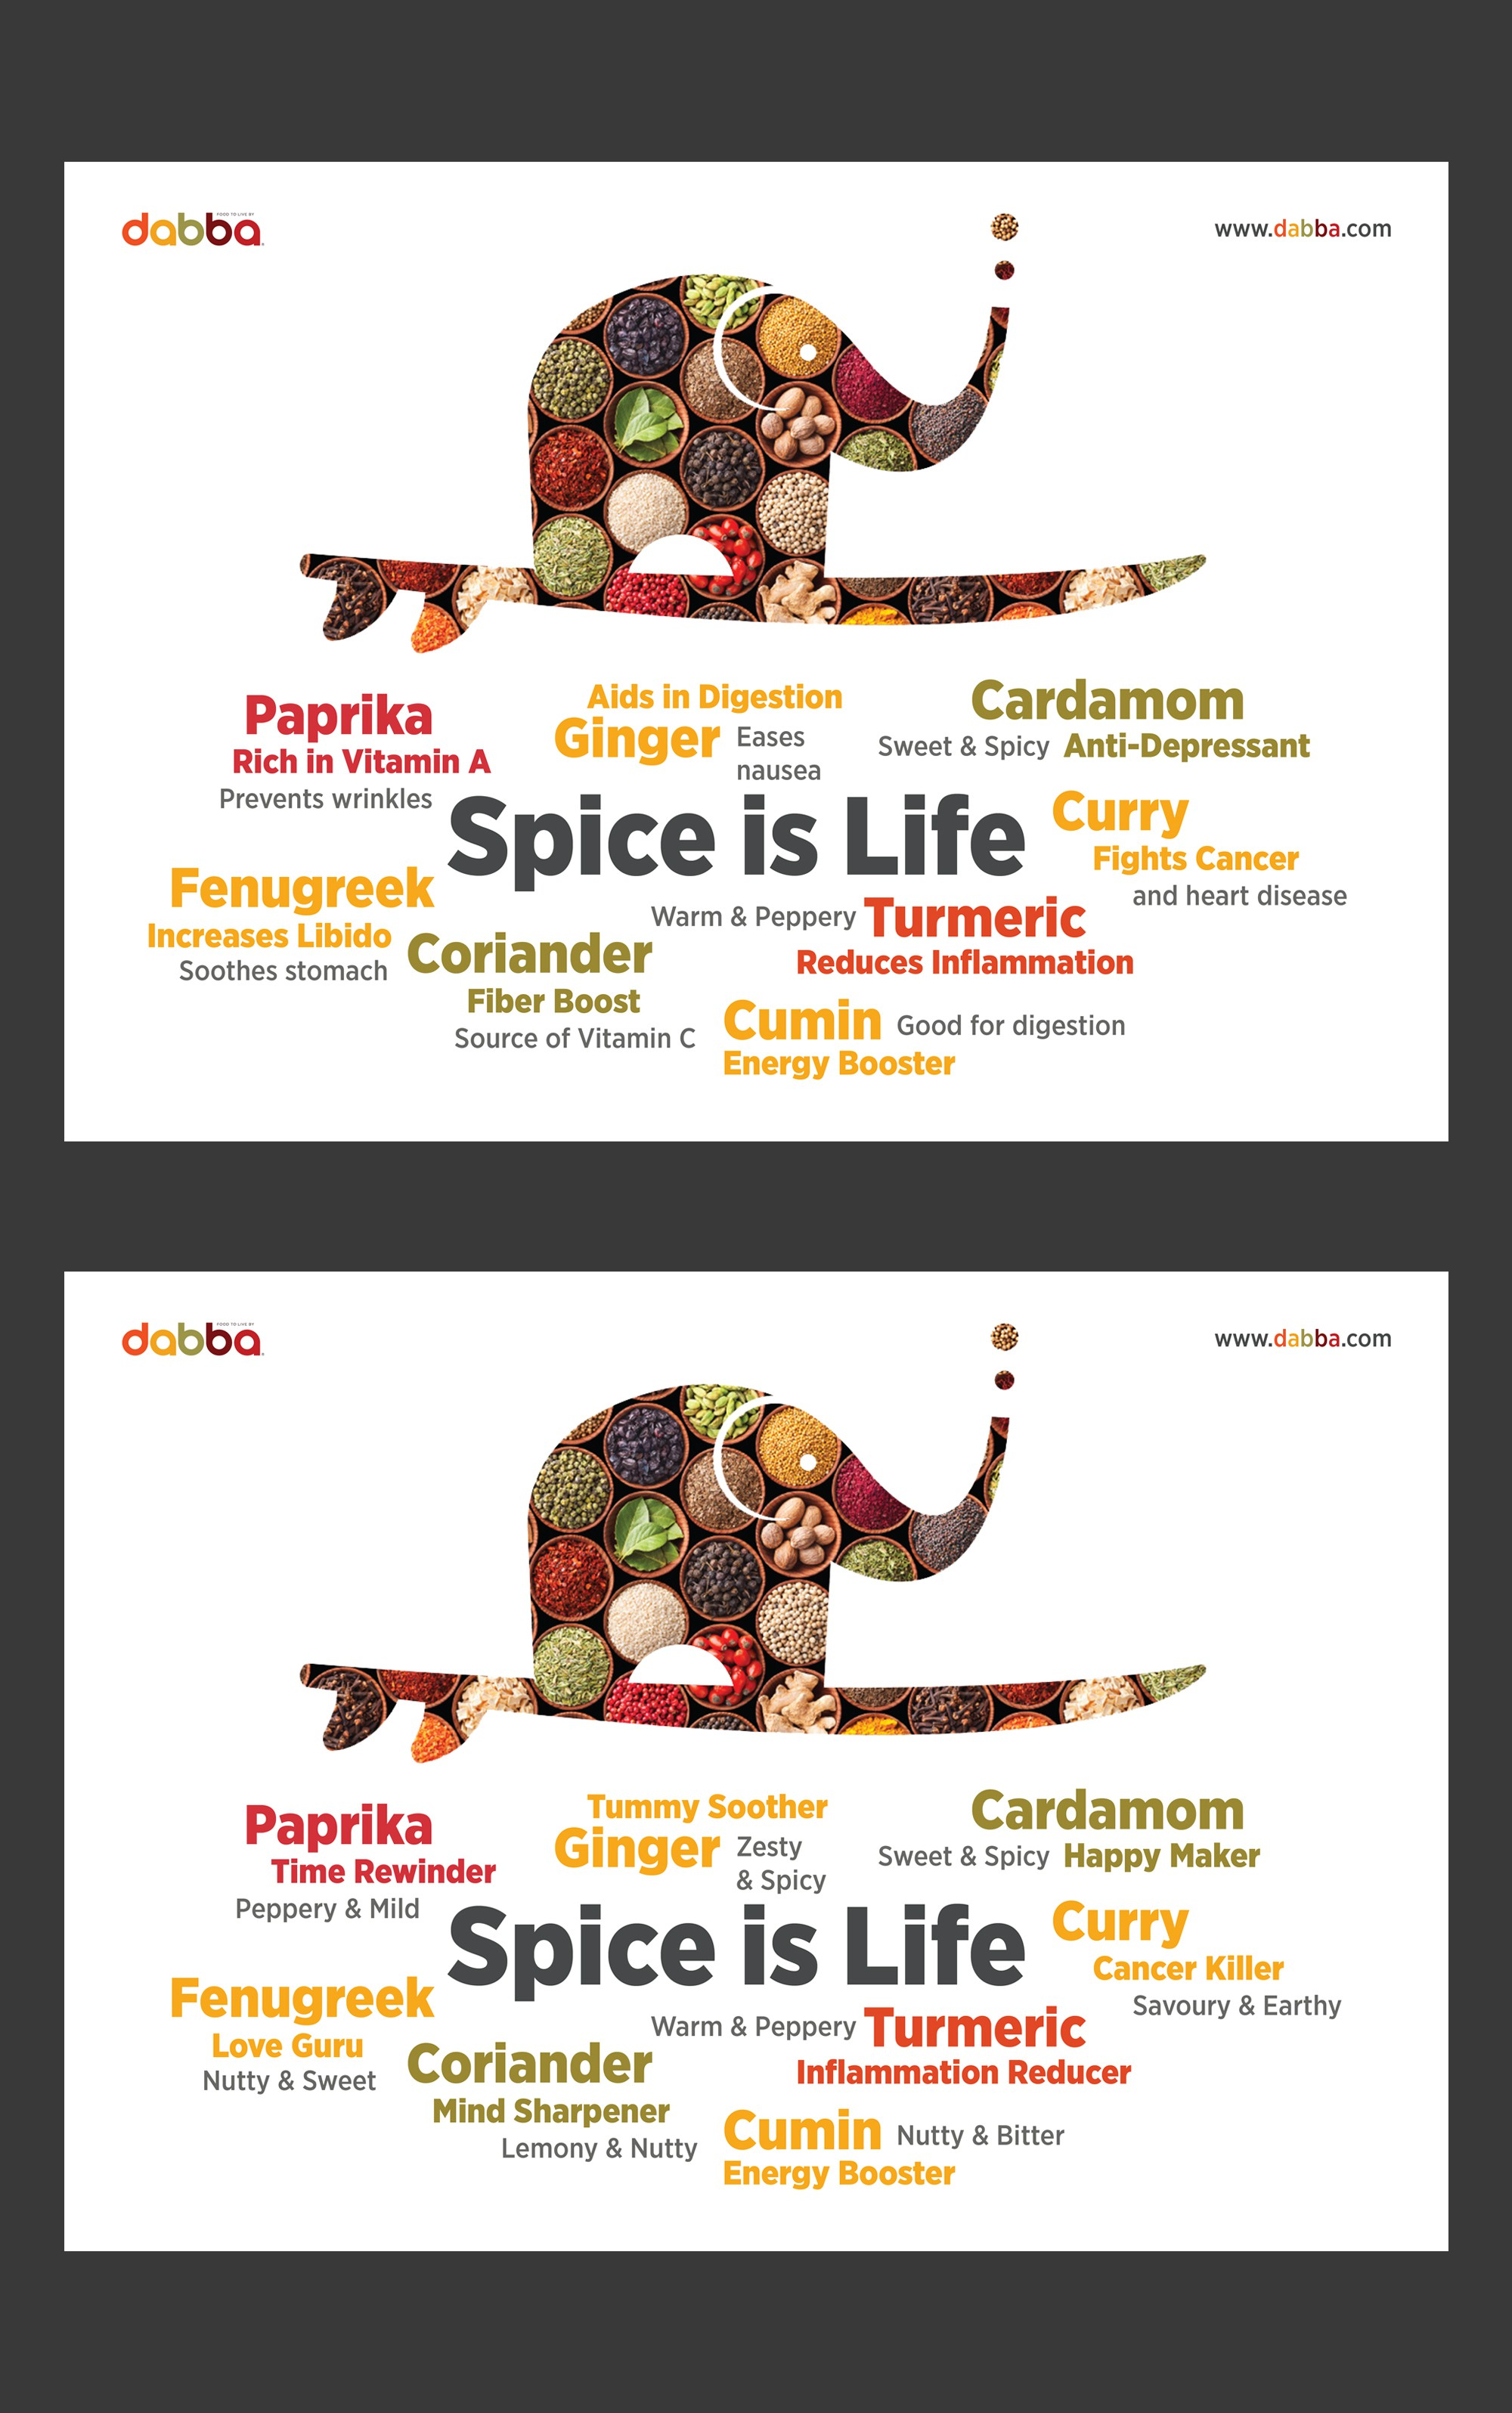 Dabba Spice is Life Poster